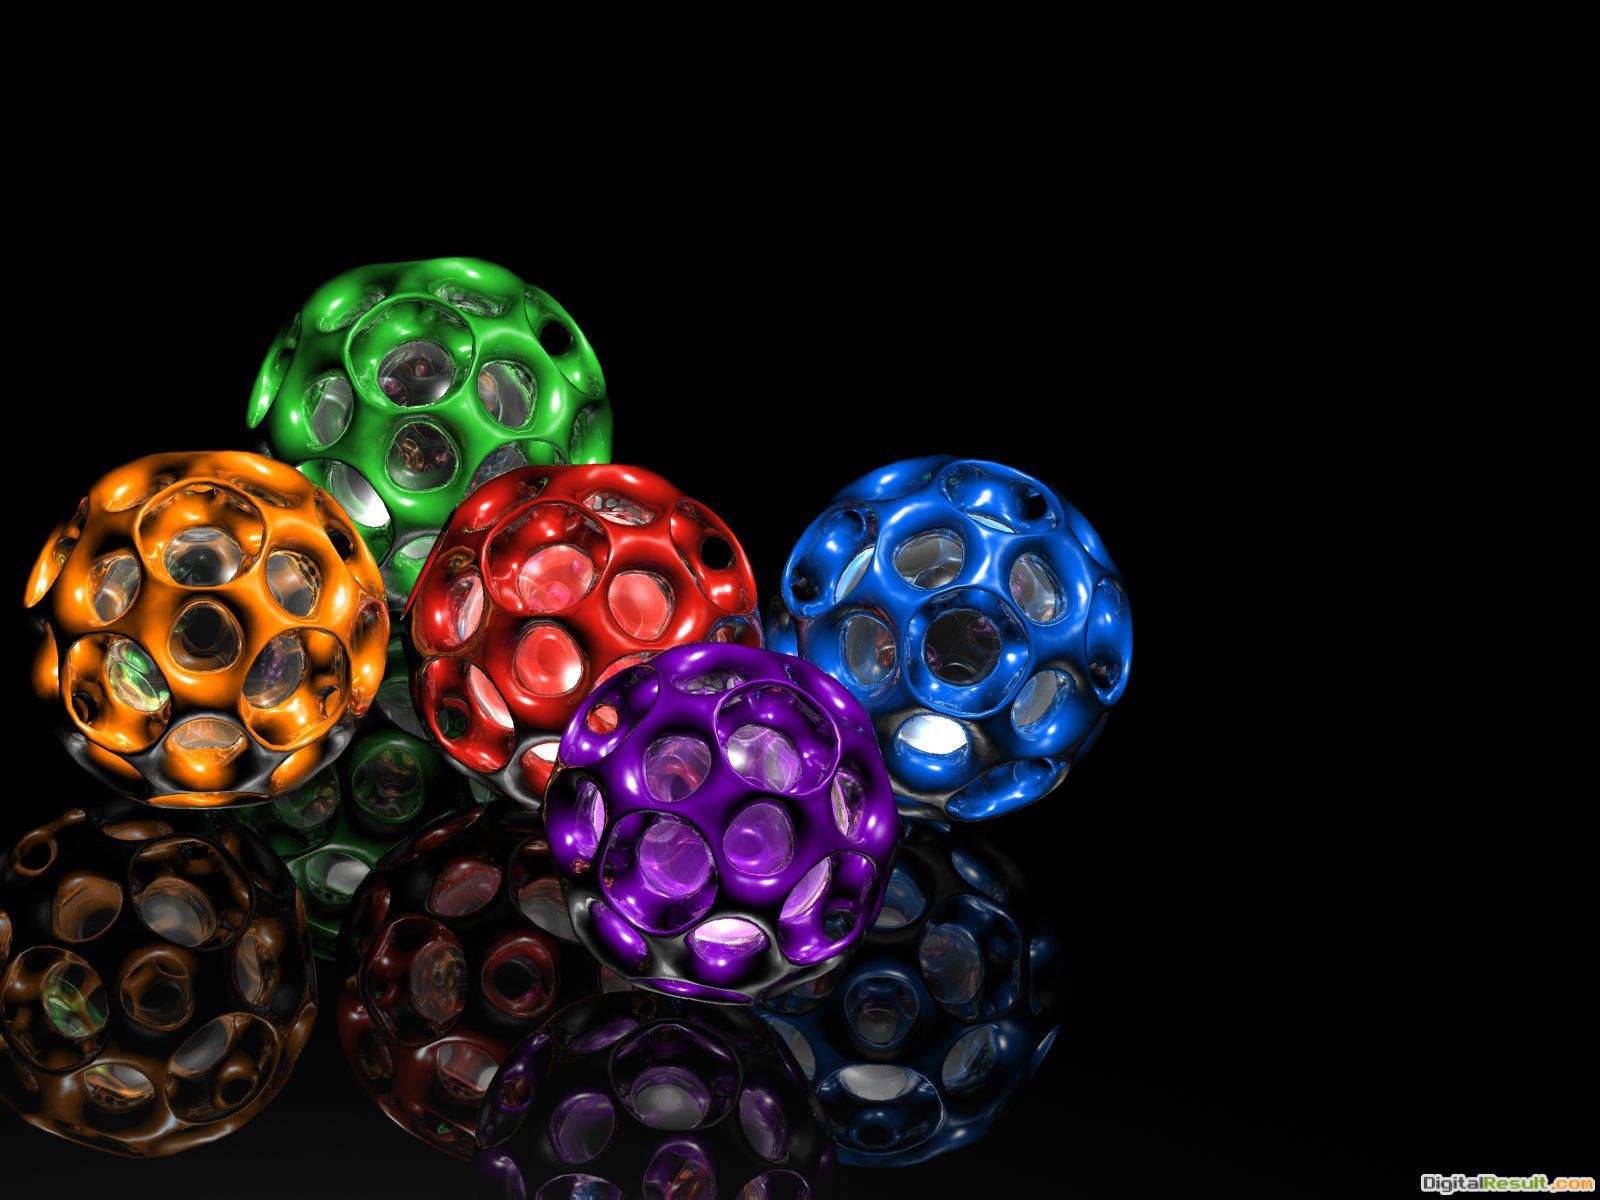 on October 6, 2015 By admin Comments Off on 3D Balls Wallpapers 1646